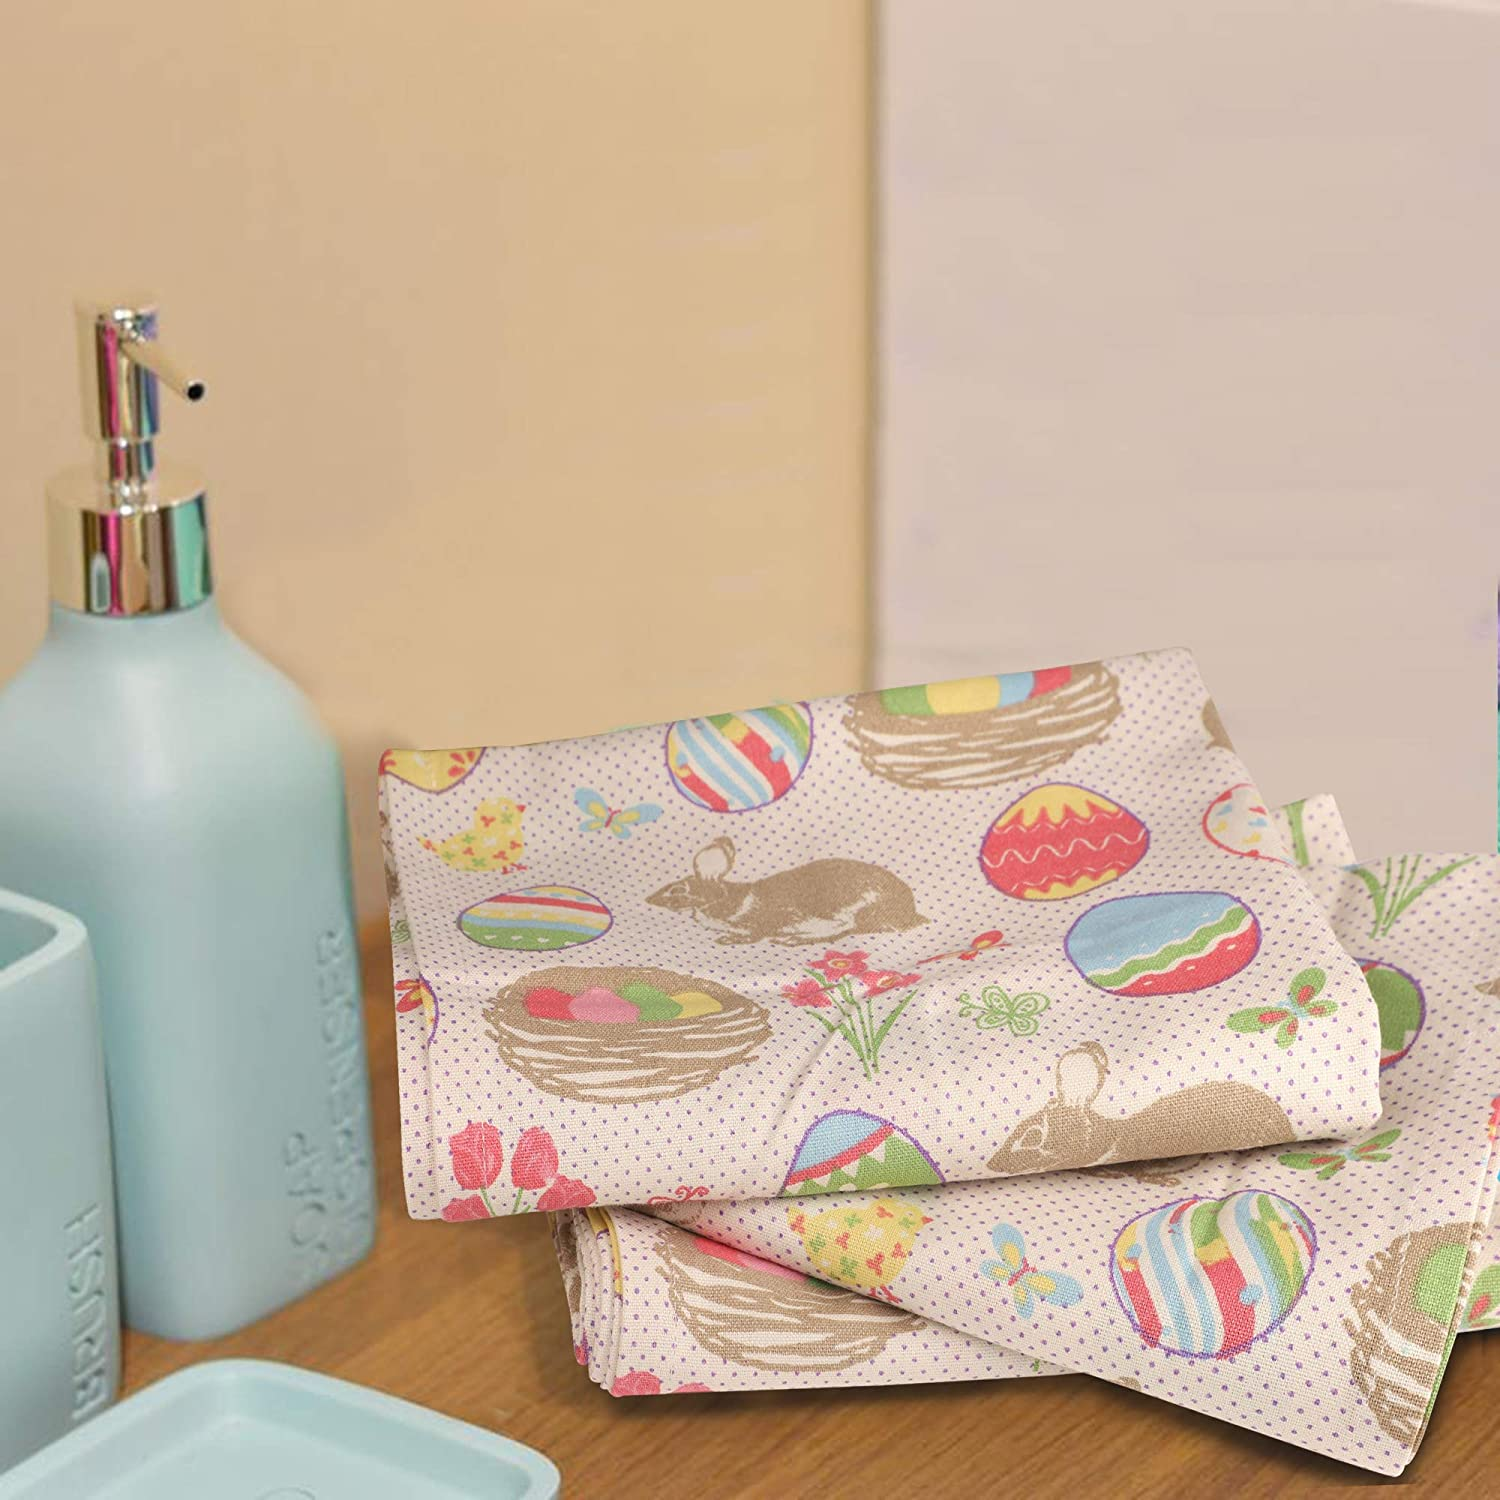 Highly Absorbent Bar Towels /& Tea Towels - Urban Villa Kitchen Towels,Christmas Tree Print,Red//Green Size: 20X30 Inch Set of 6 Premium Quality,100/% Cotton Dish Towels,Mitered Corners,Ultra Soft